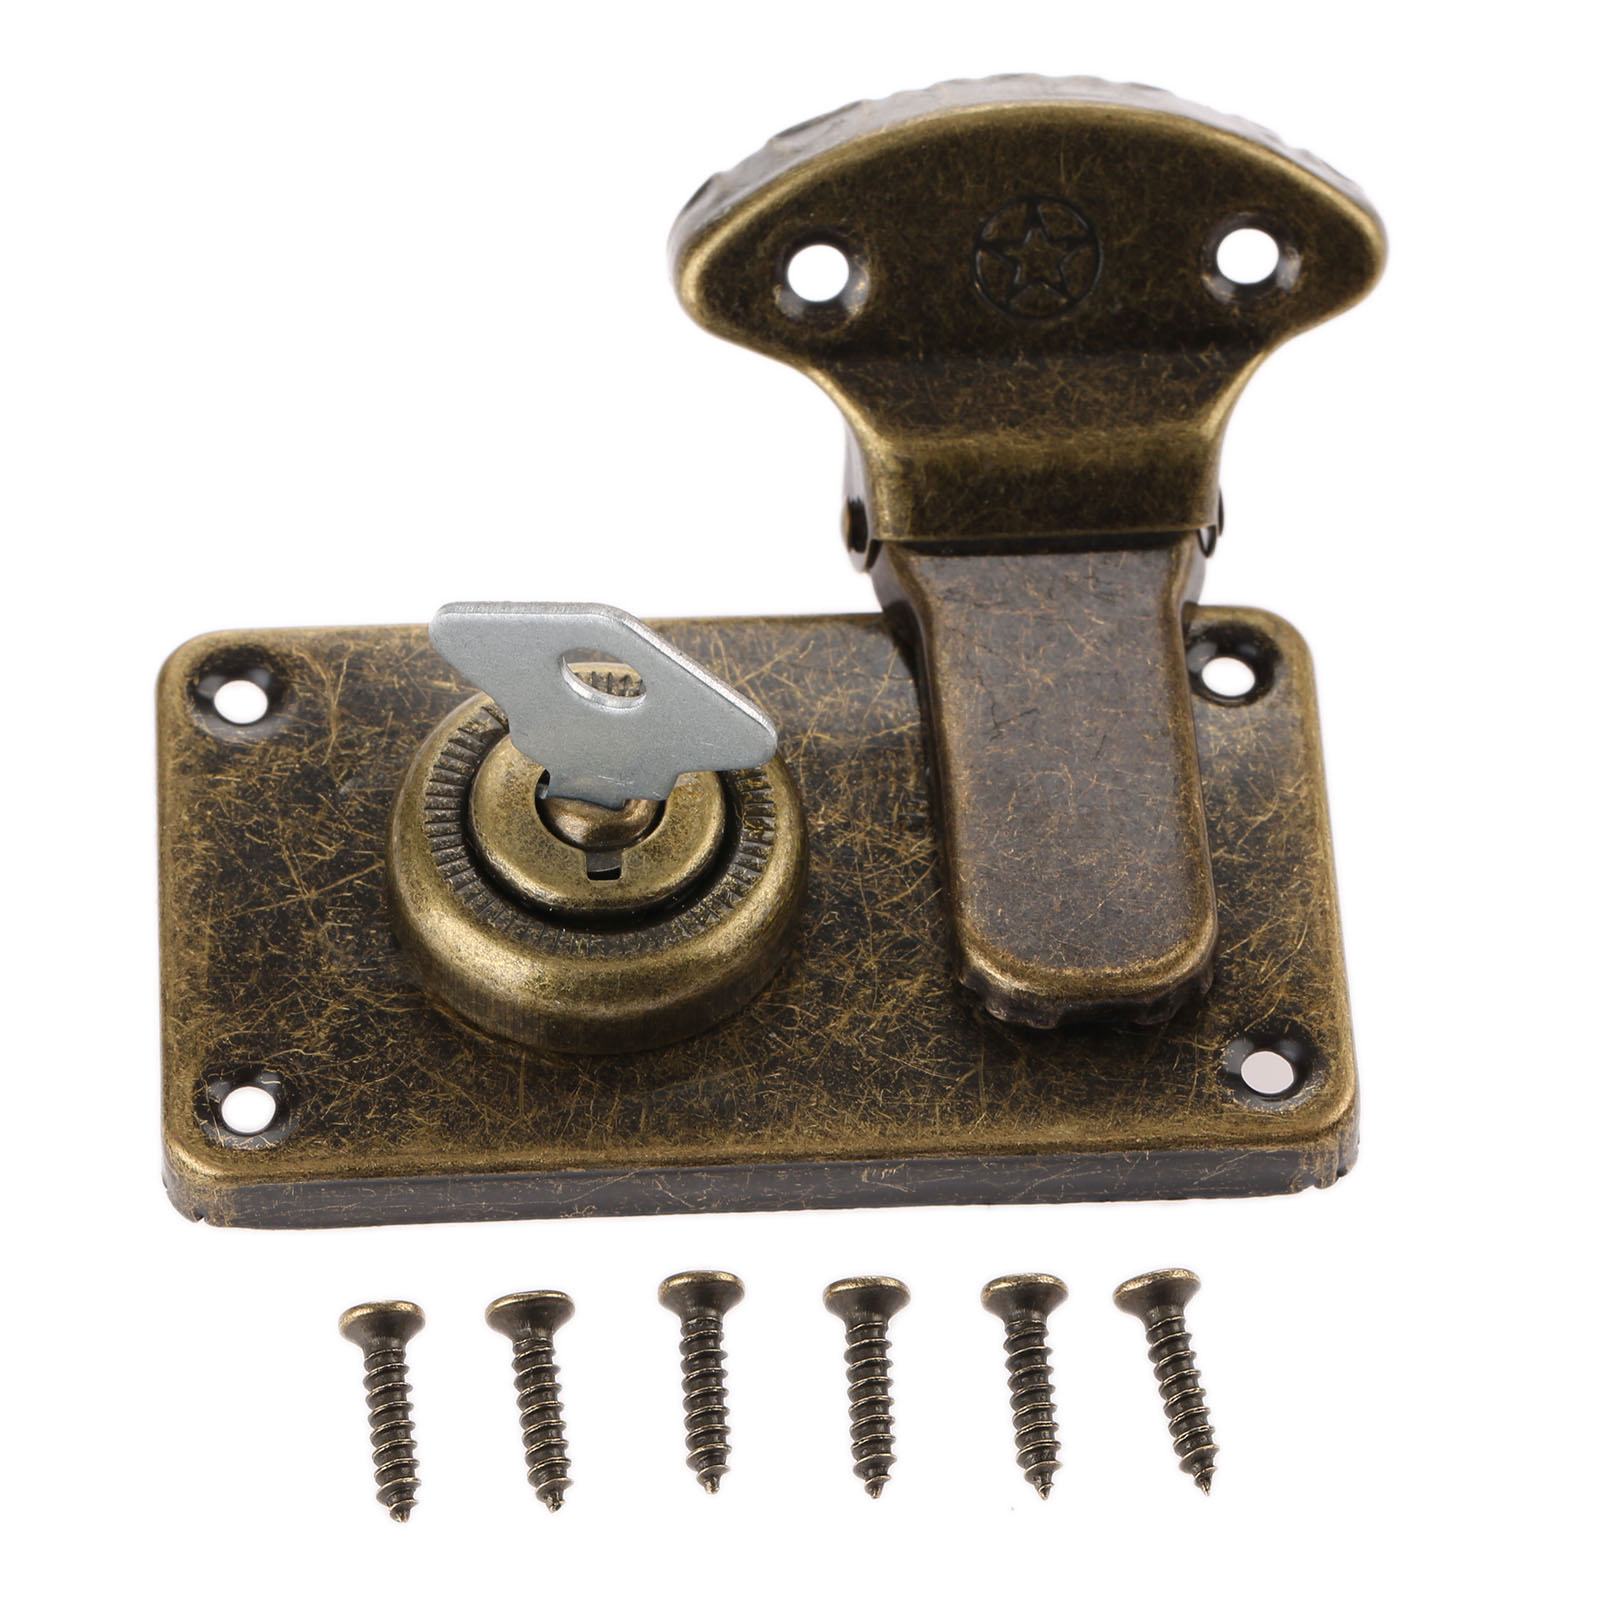 Vintage Furniture Hardware Antique Box Latches Decorative